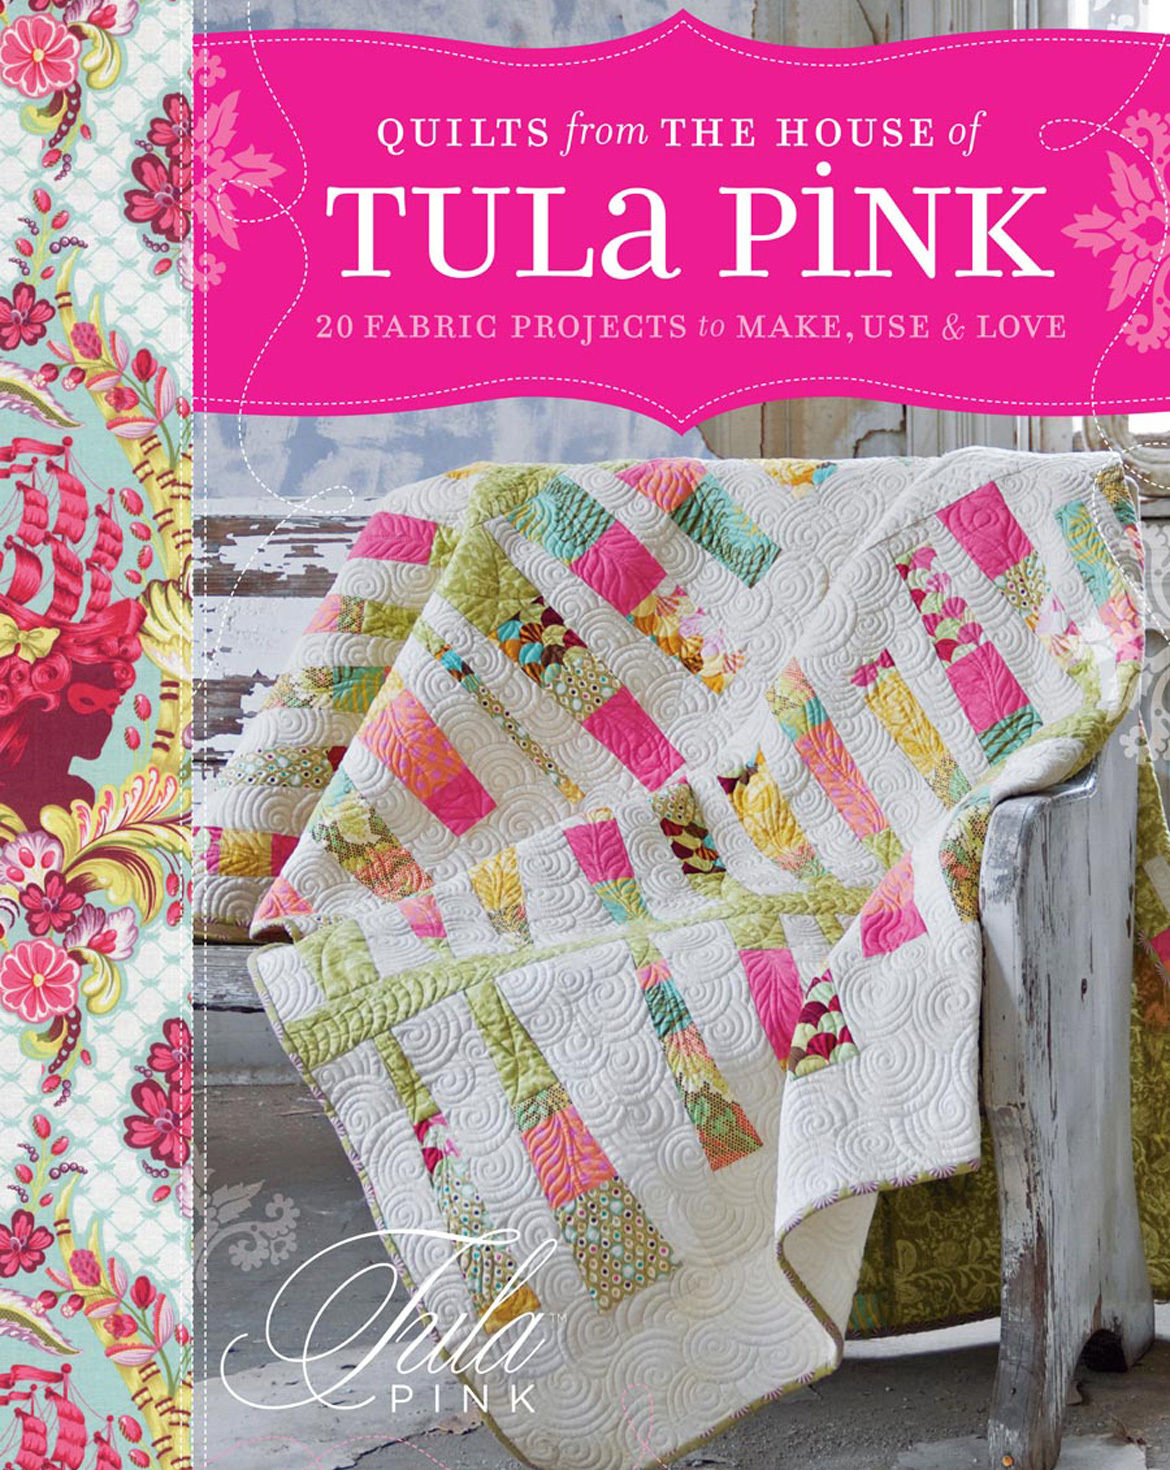 Buch Quilts of Tula Pink